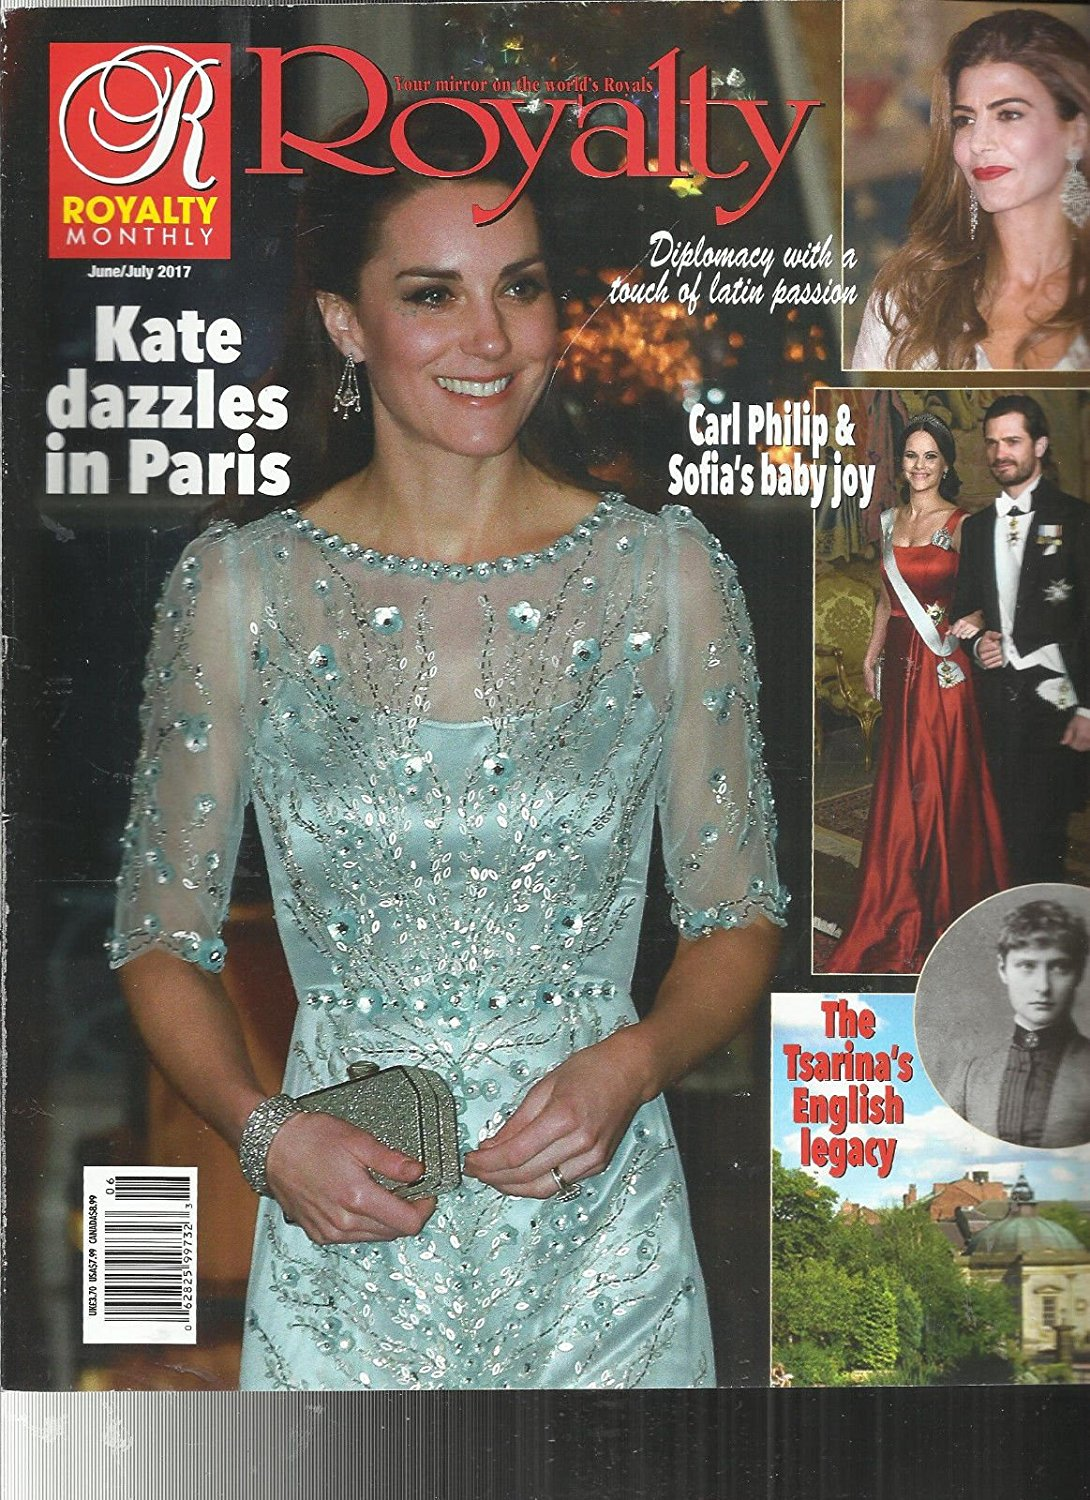 ROYALTY MONTHLY MAGAZINE, JUNE/JULY, 2017 KATE DAZZLES IN PARIS